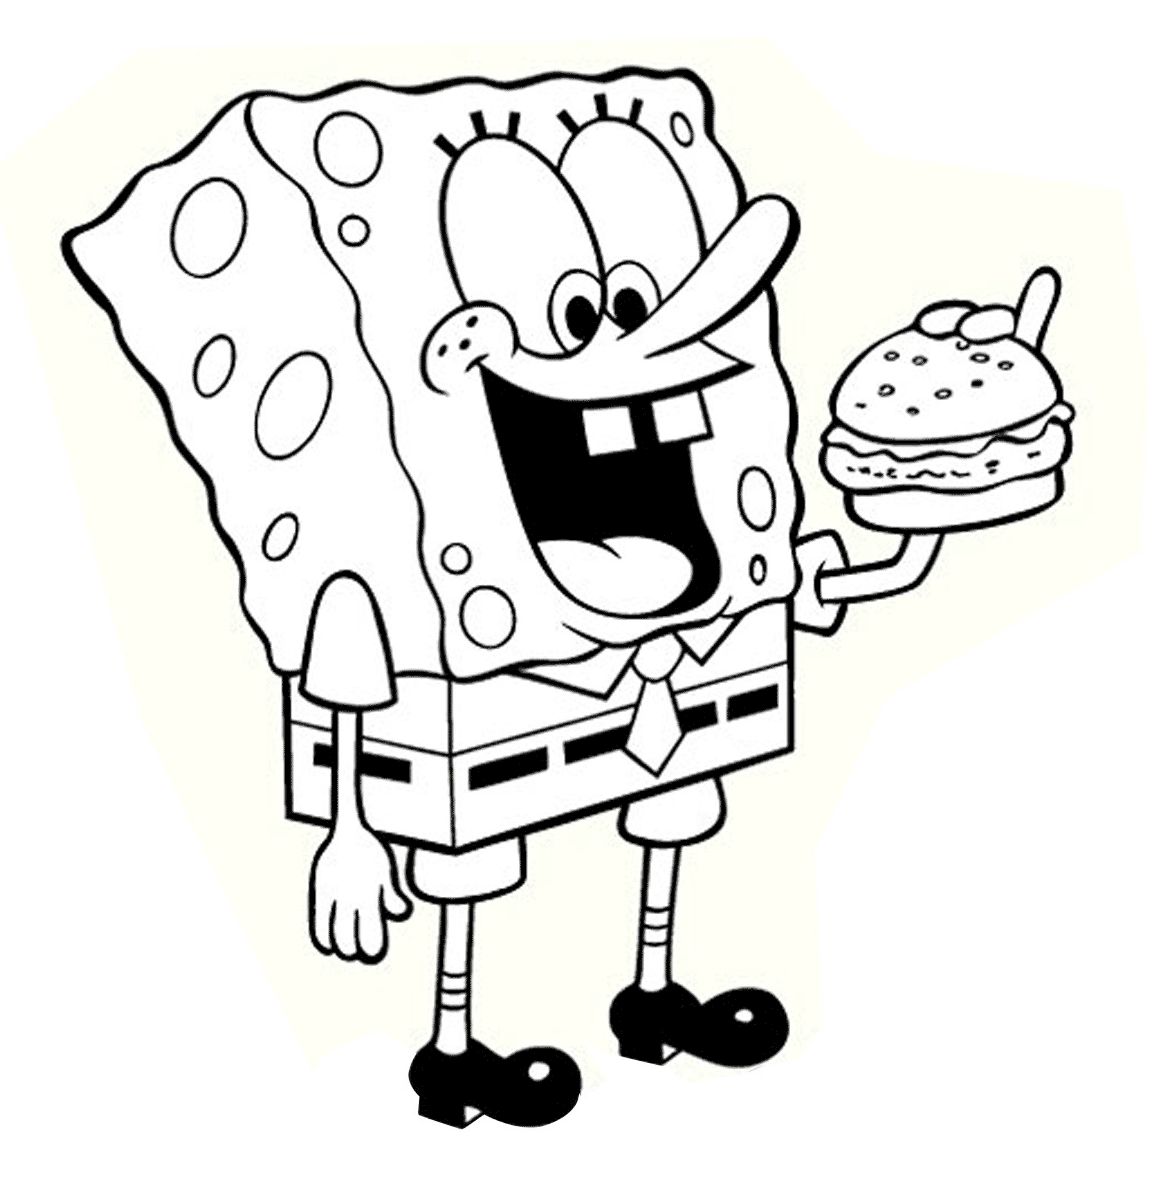 SpongeBob SquarePants Coloring Pages coloring.filminspector.com